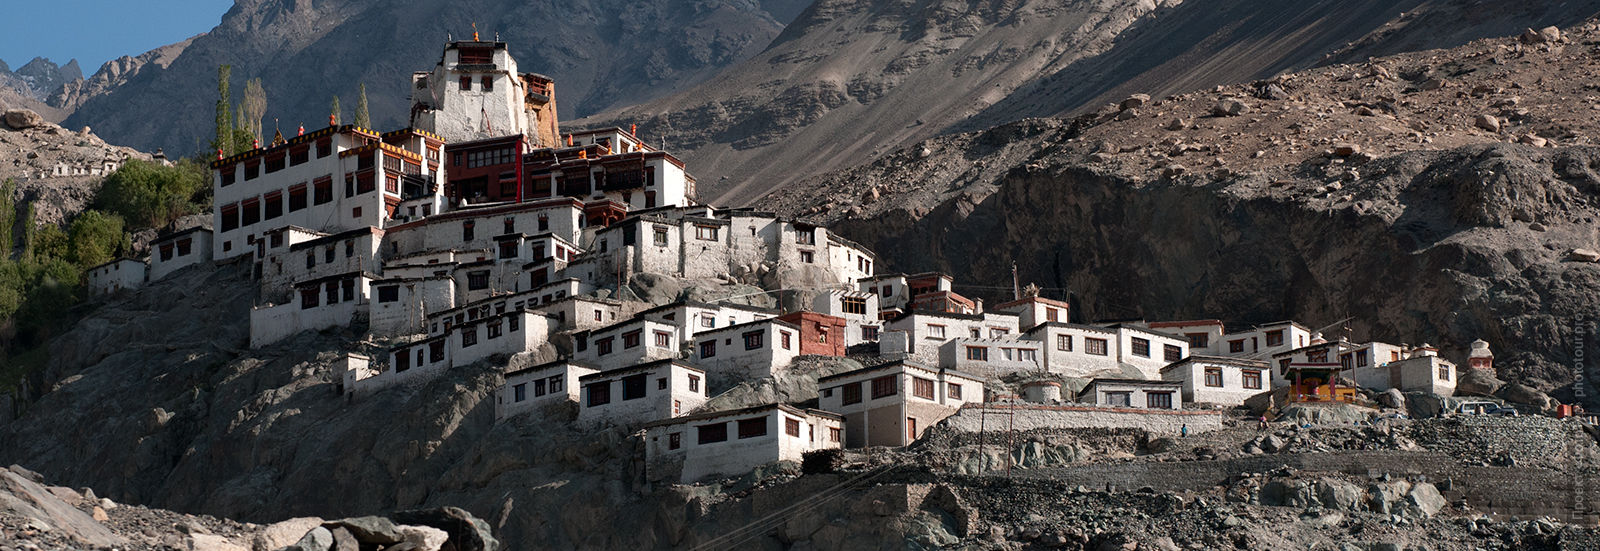 Buddhist Monastery-city disc Gompa village Discs Nubira. Tour of the Nubra valley, October 2017.